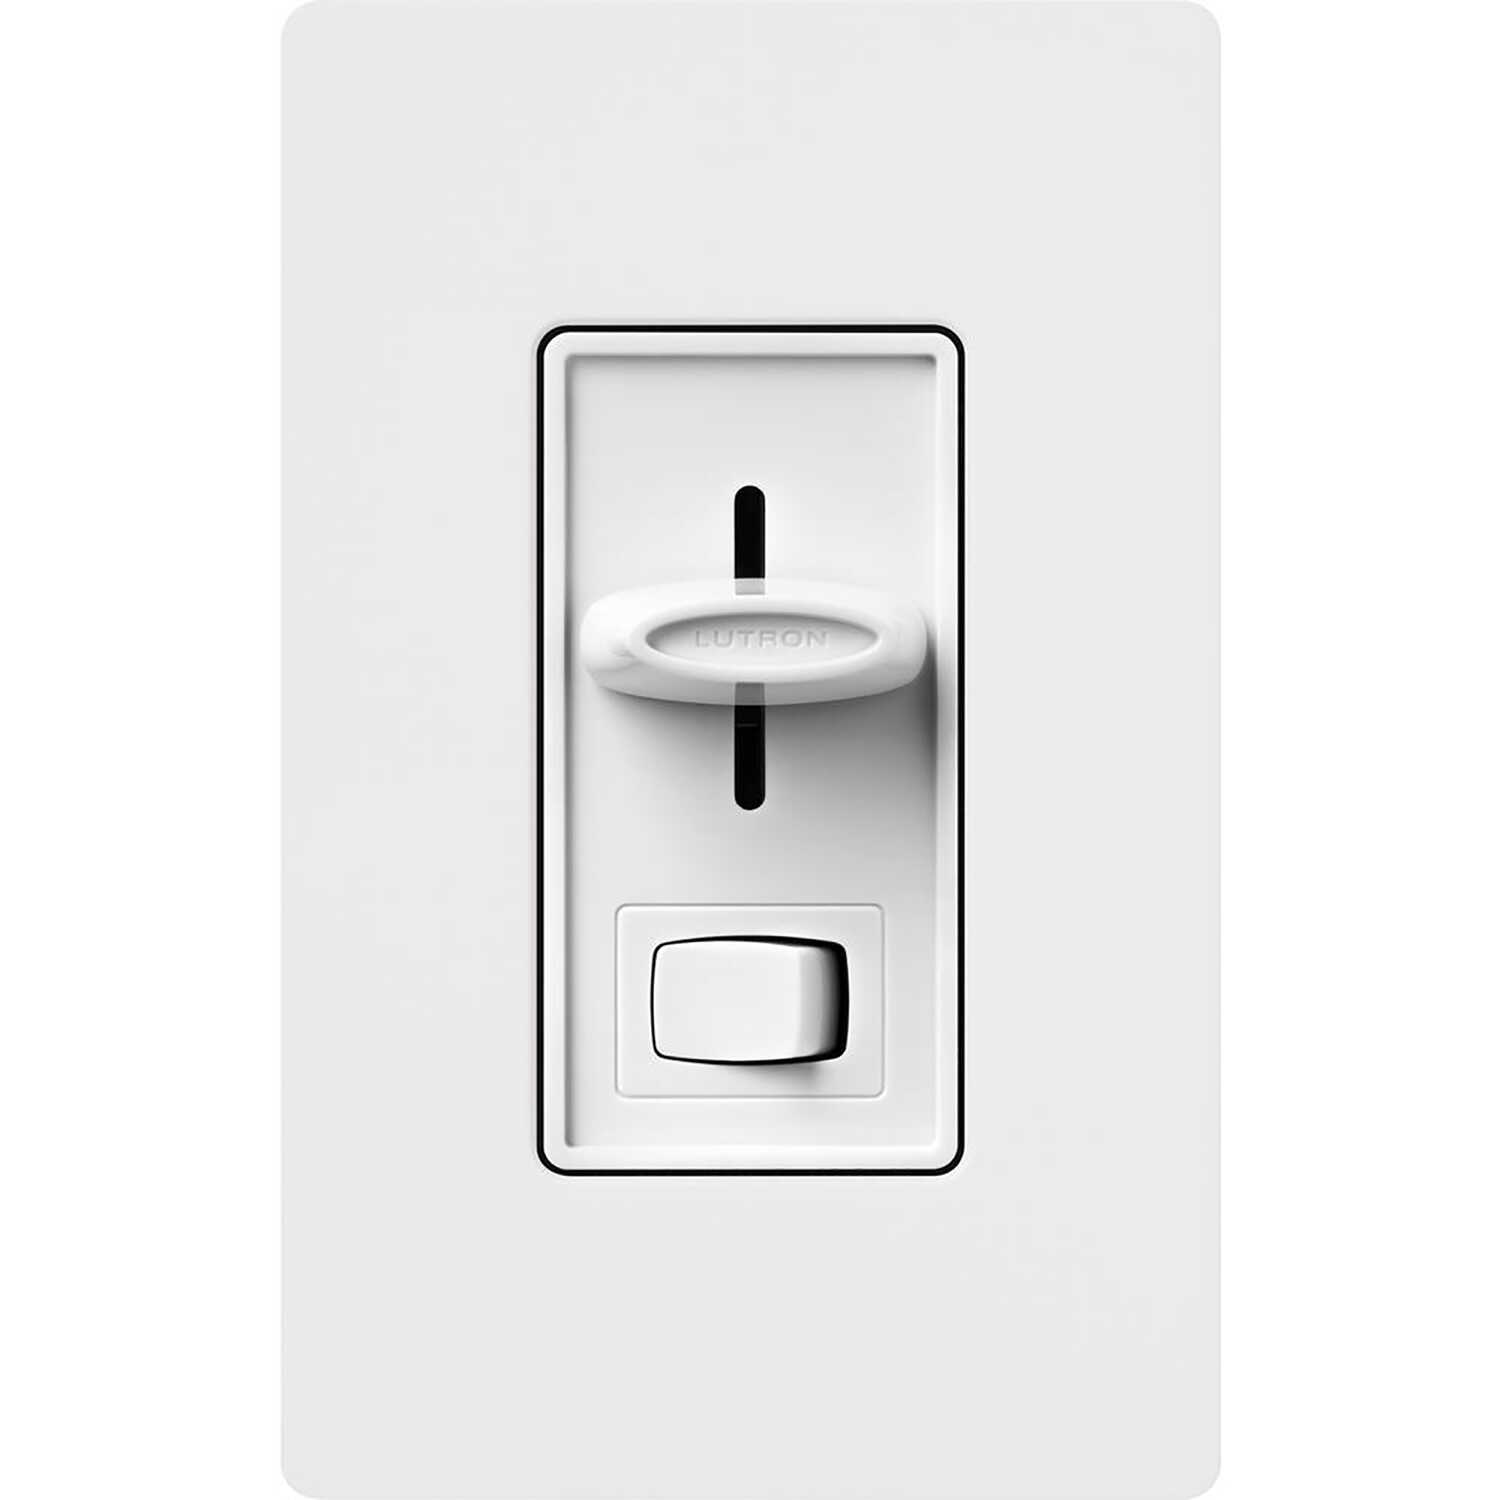 Lutron  Skylark  White  150 watts 3-Way  Dimmer Switch